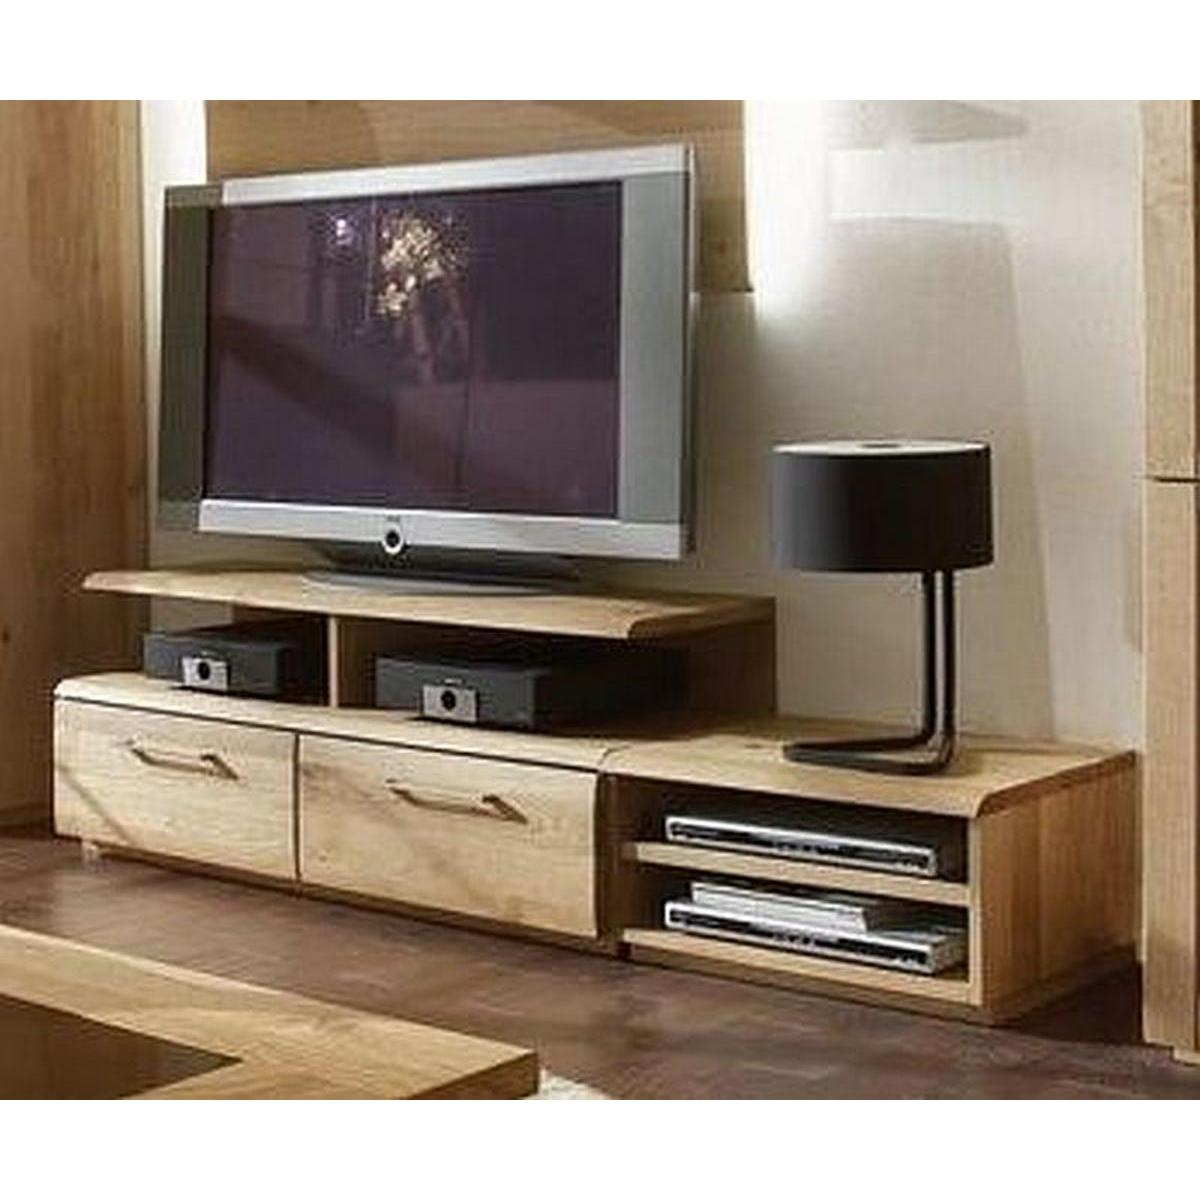 tv lowboard design design tv unterschrank cube lowboard. Black Bedroom Furniture Sets. Home Design Ideas